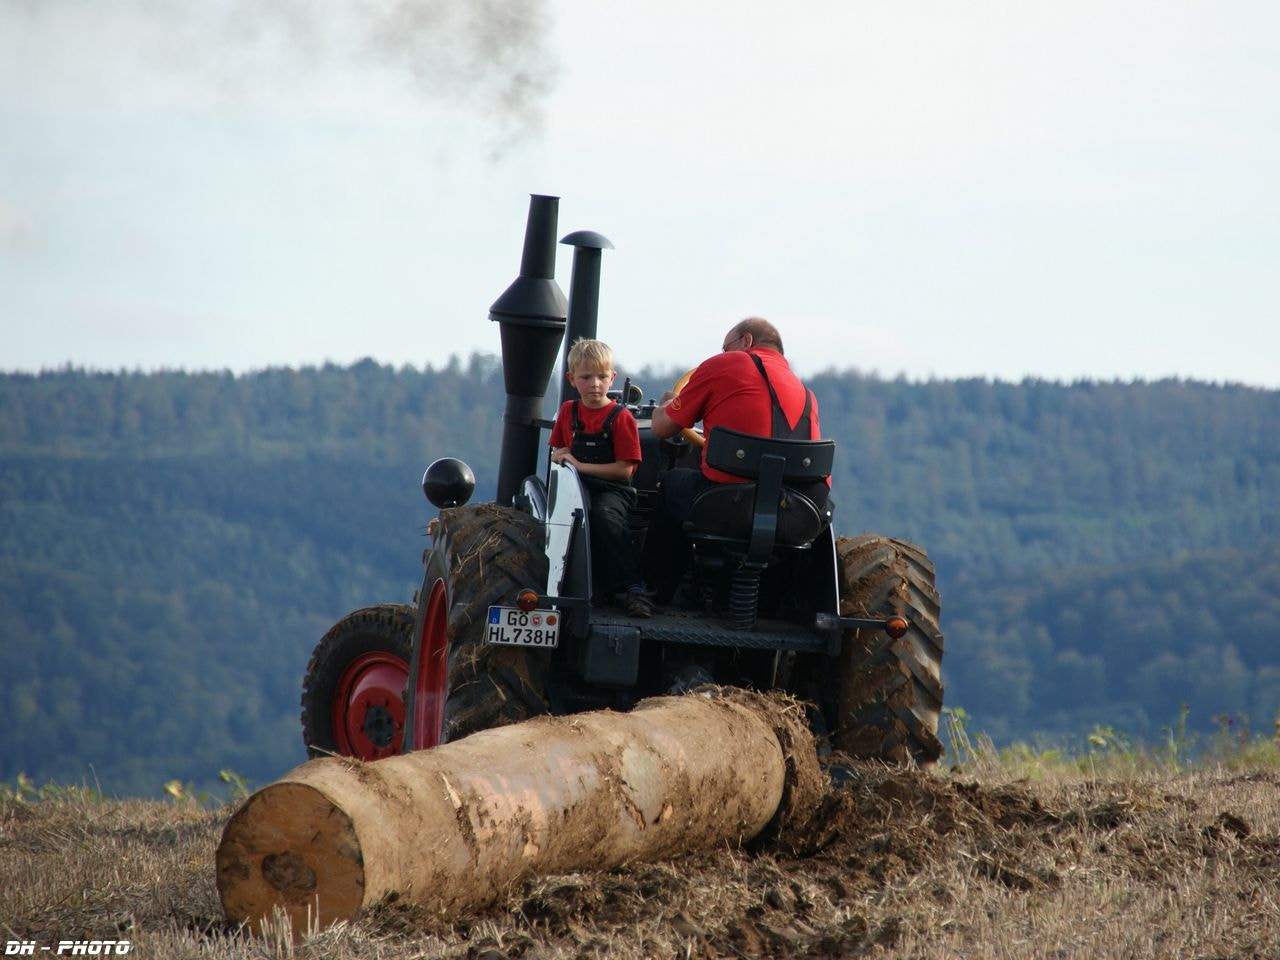 Photograph hard working with an old tractor and young copilot by Klaus Heinemann on 500px